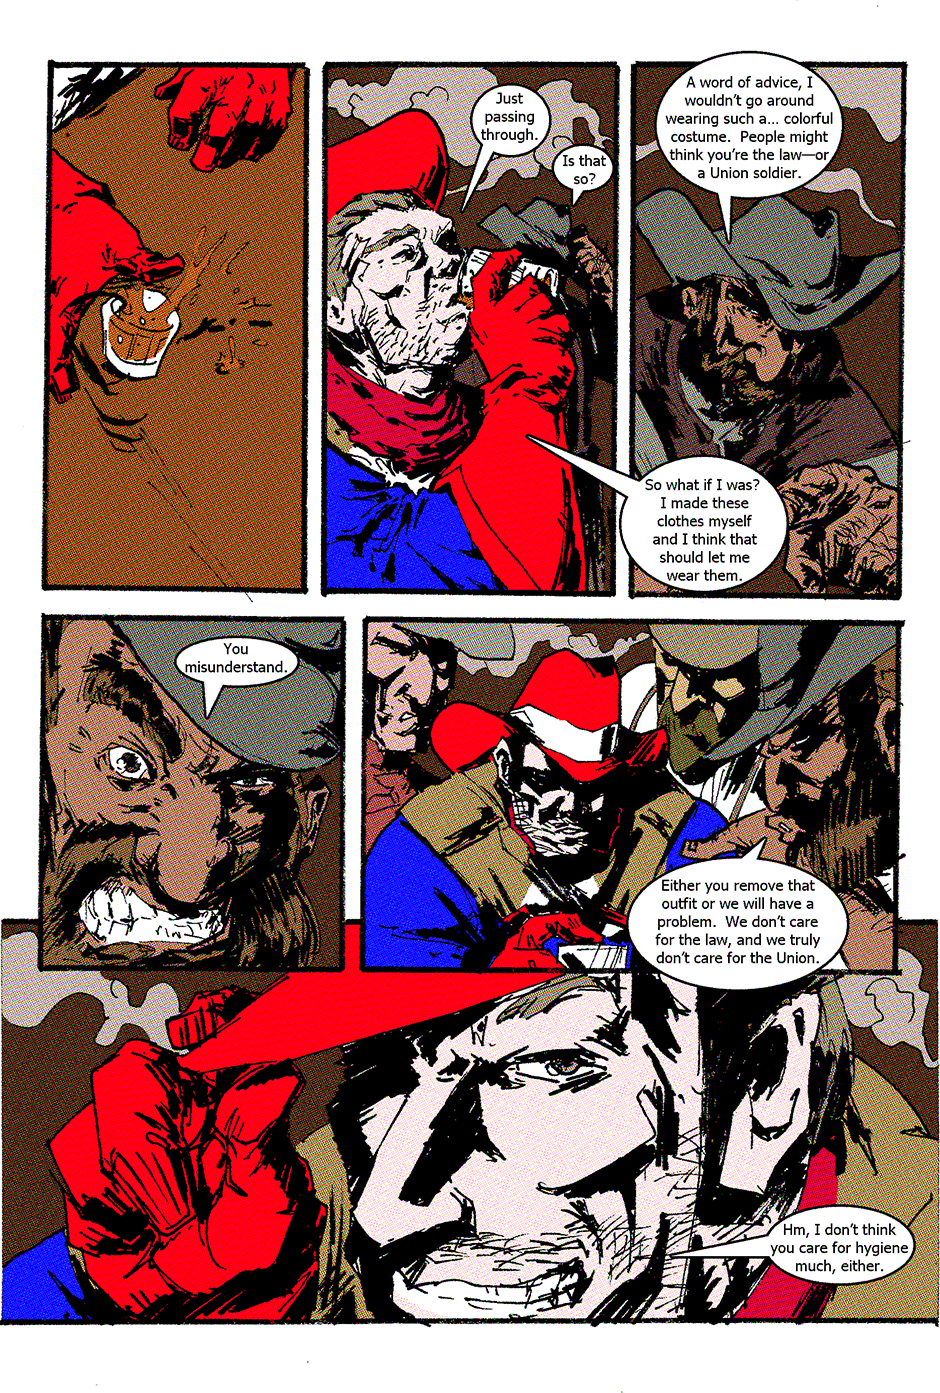 Issue 2: American Cowboy - Page 5